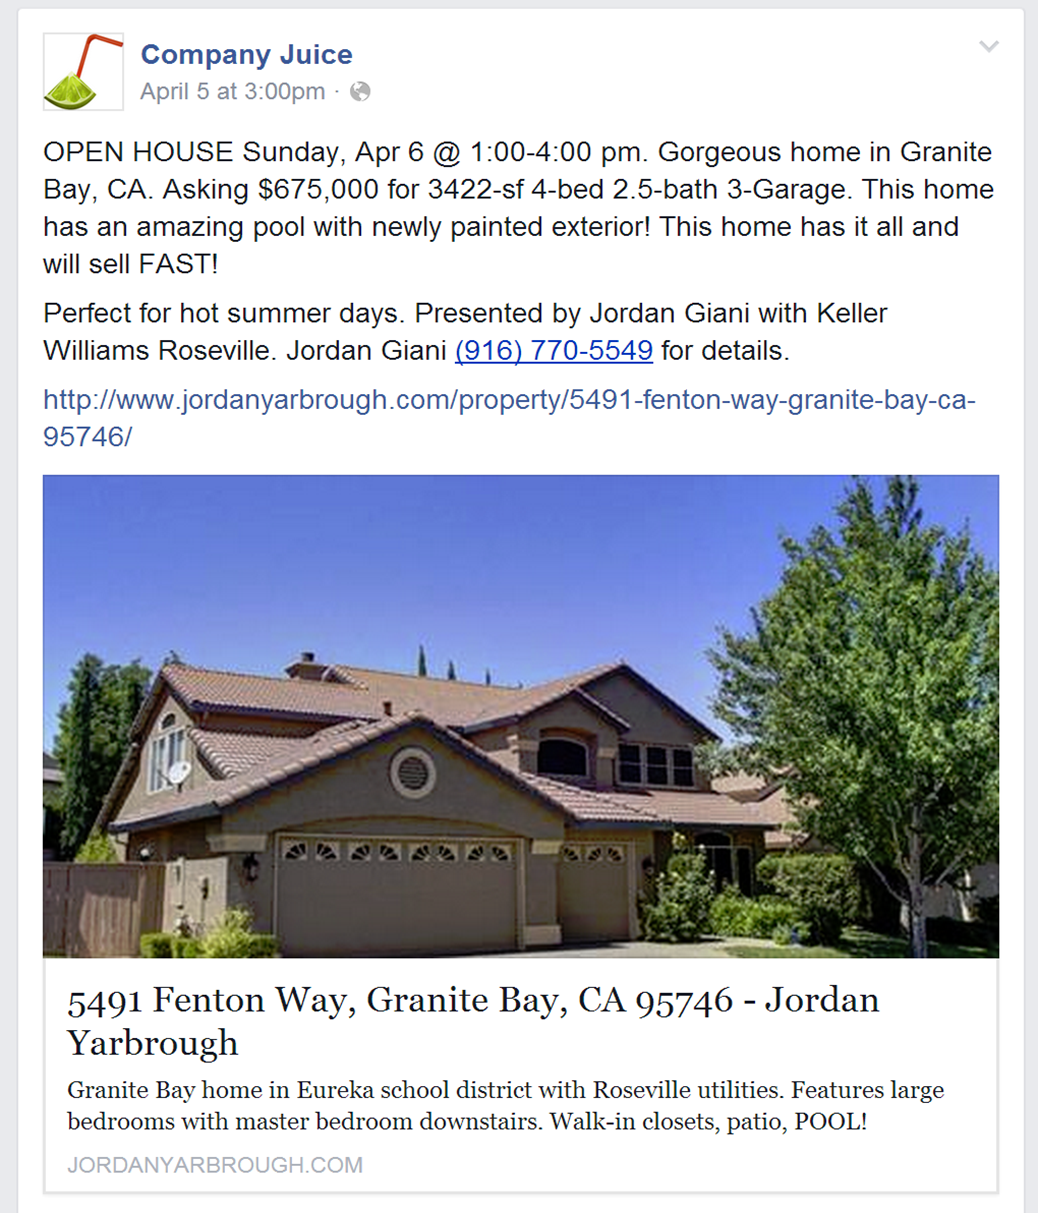 An example of an Open House Facebook Real Estate Ad. image via Company Juice